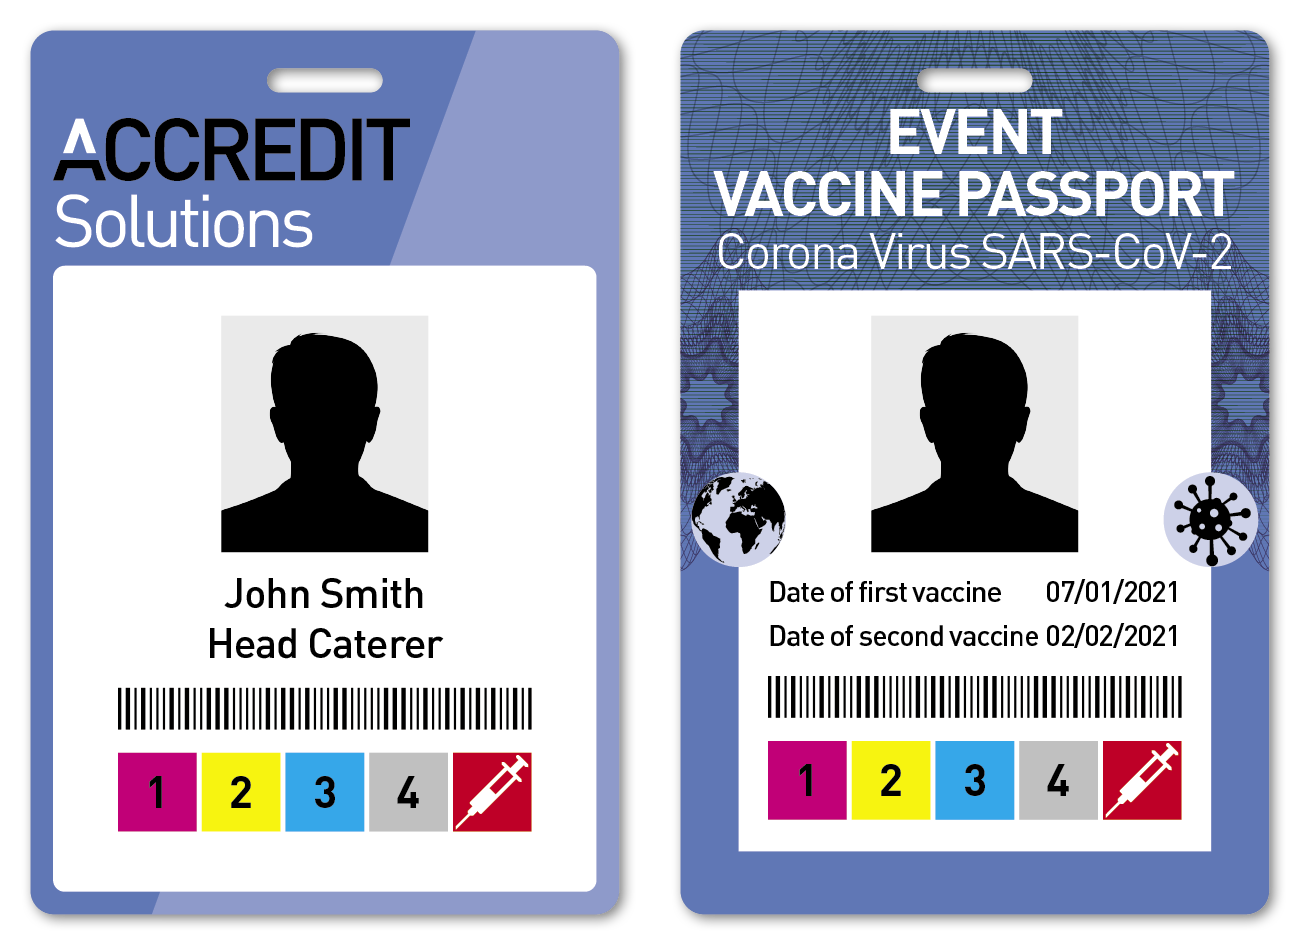 Vaccine passports: An investment for the future?